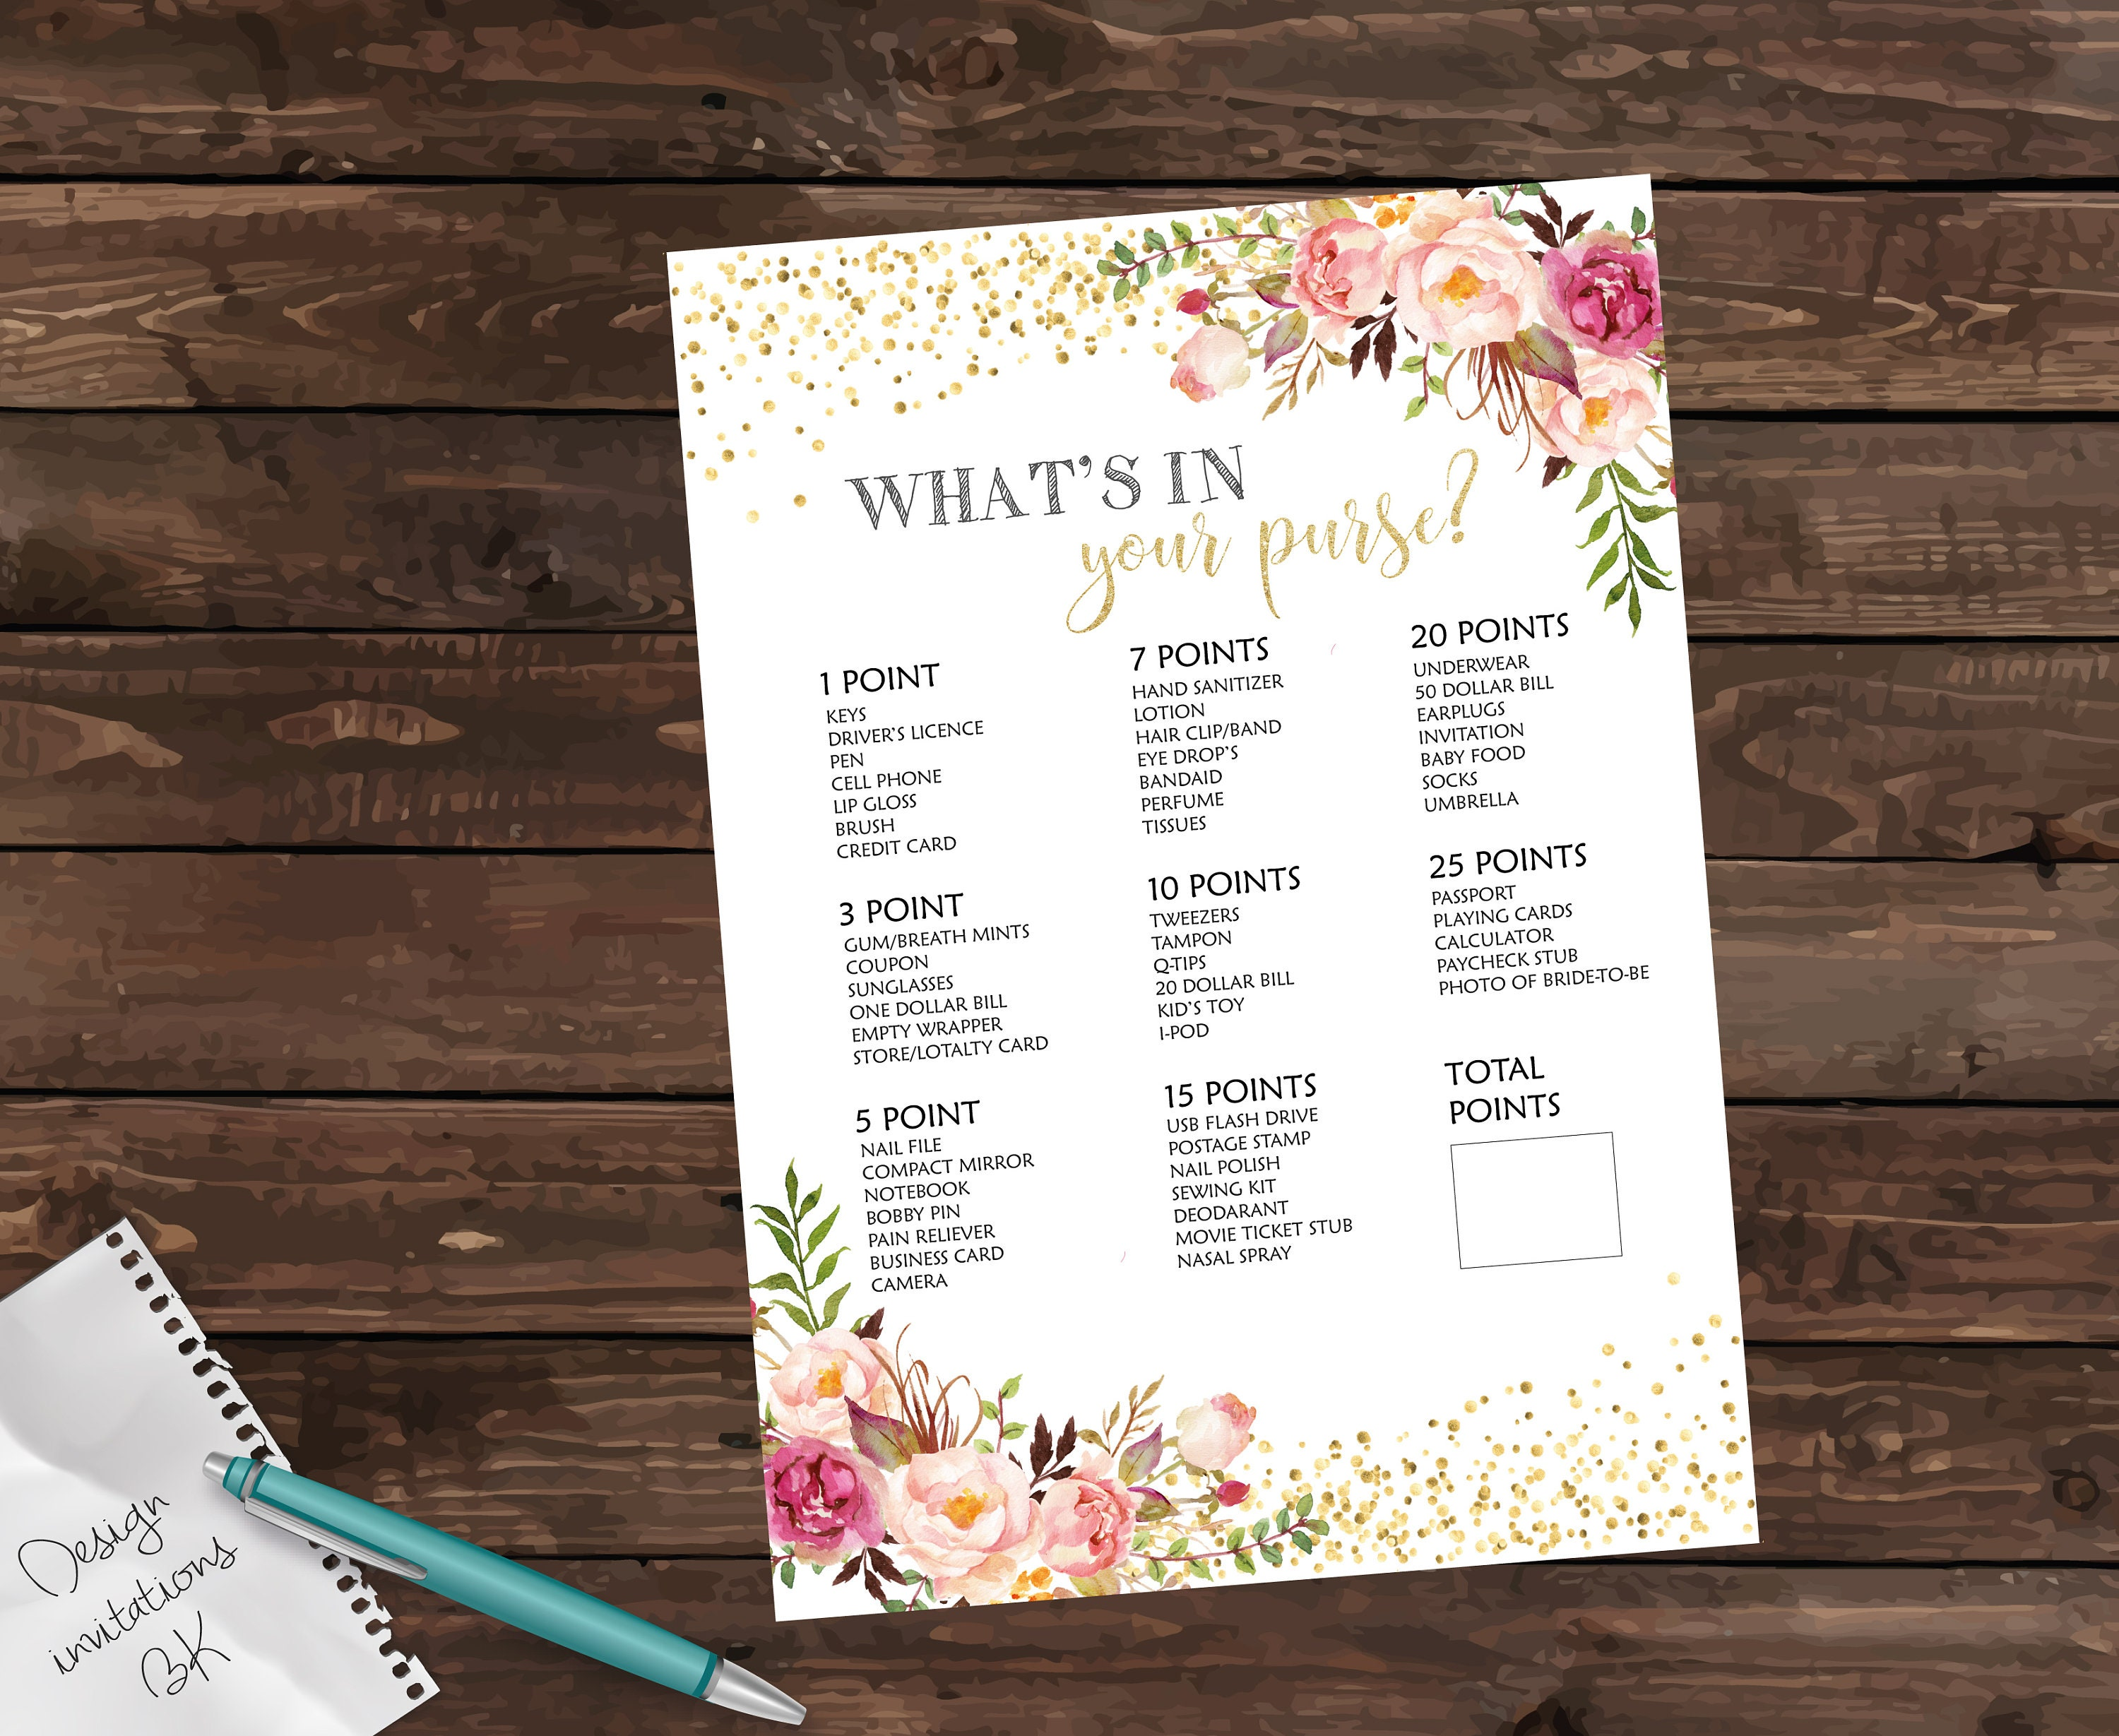 whats in your purse bridal shower games bridal shower gift bridal shower printable gold purse raid purse hunt whats in your bag